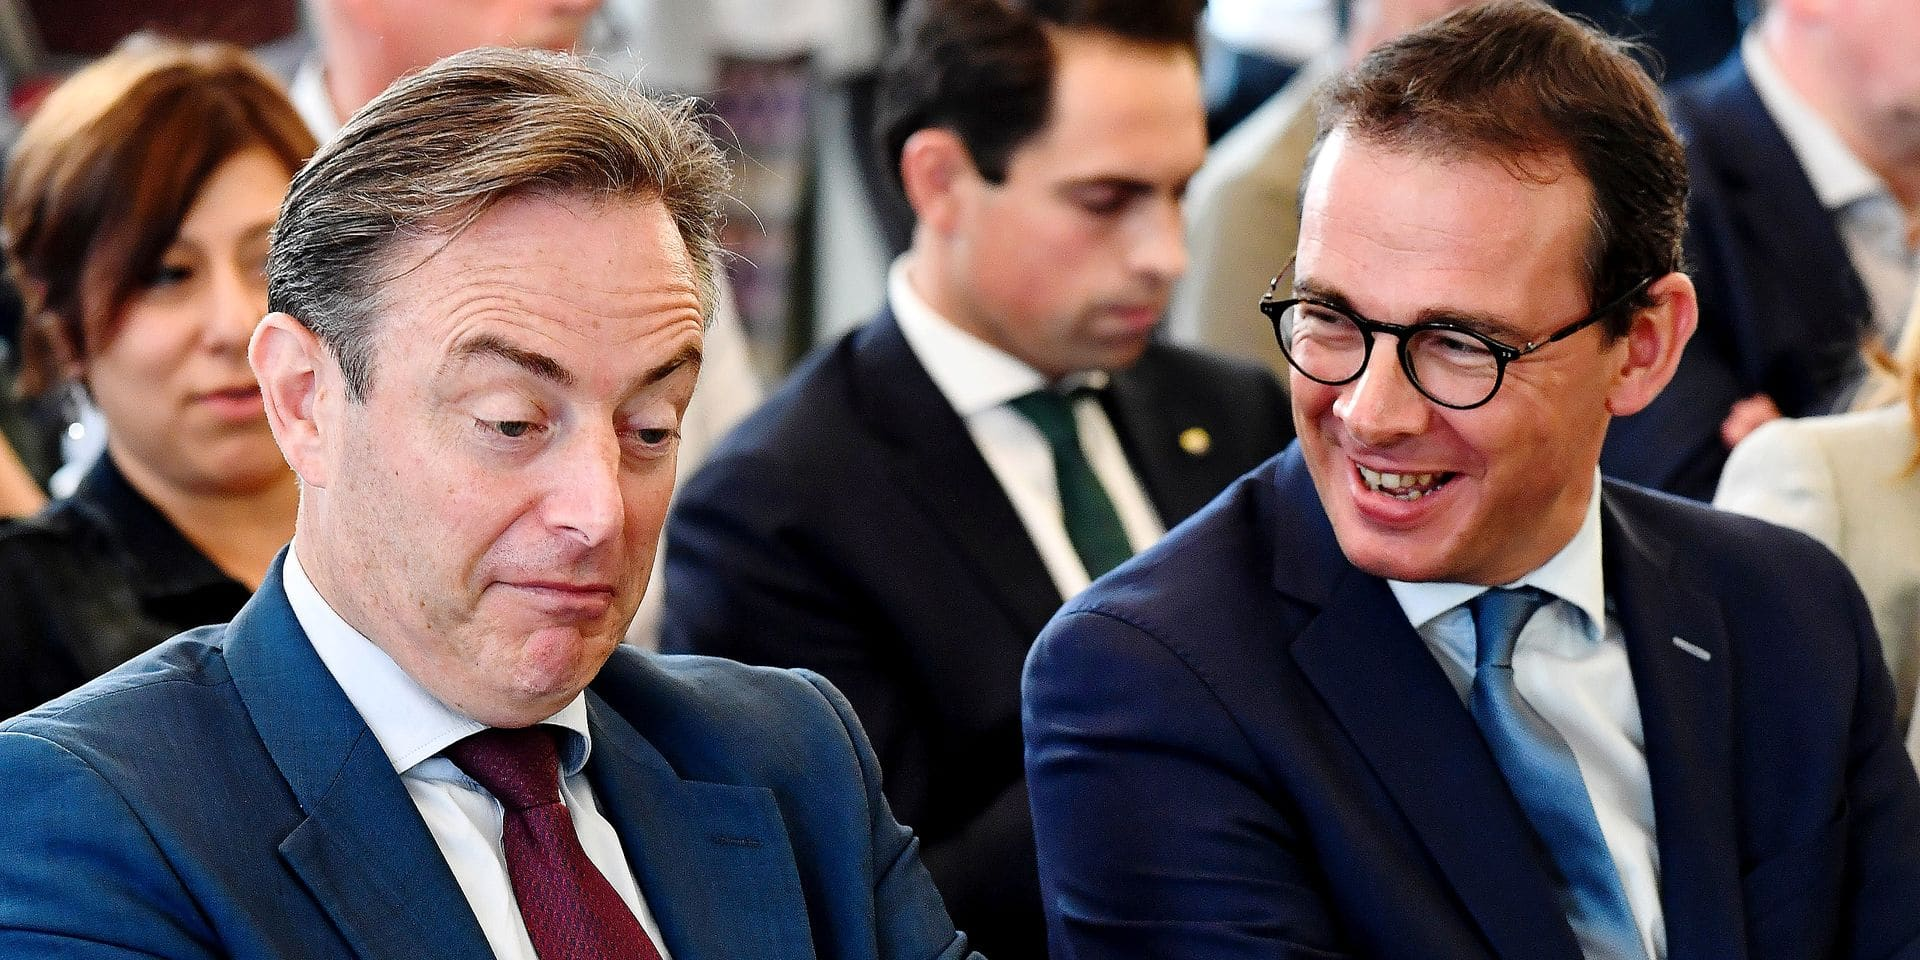 N-VA chairman Bart De Wever and CD&V chairman Wouter Beke pictured during the drawing of the list numbers for the upcoming local elections in the Flanders region, Tuesday 04 September 2018 in Brussels. BELGA PHOTO DIRK WAEM